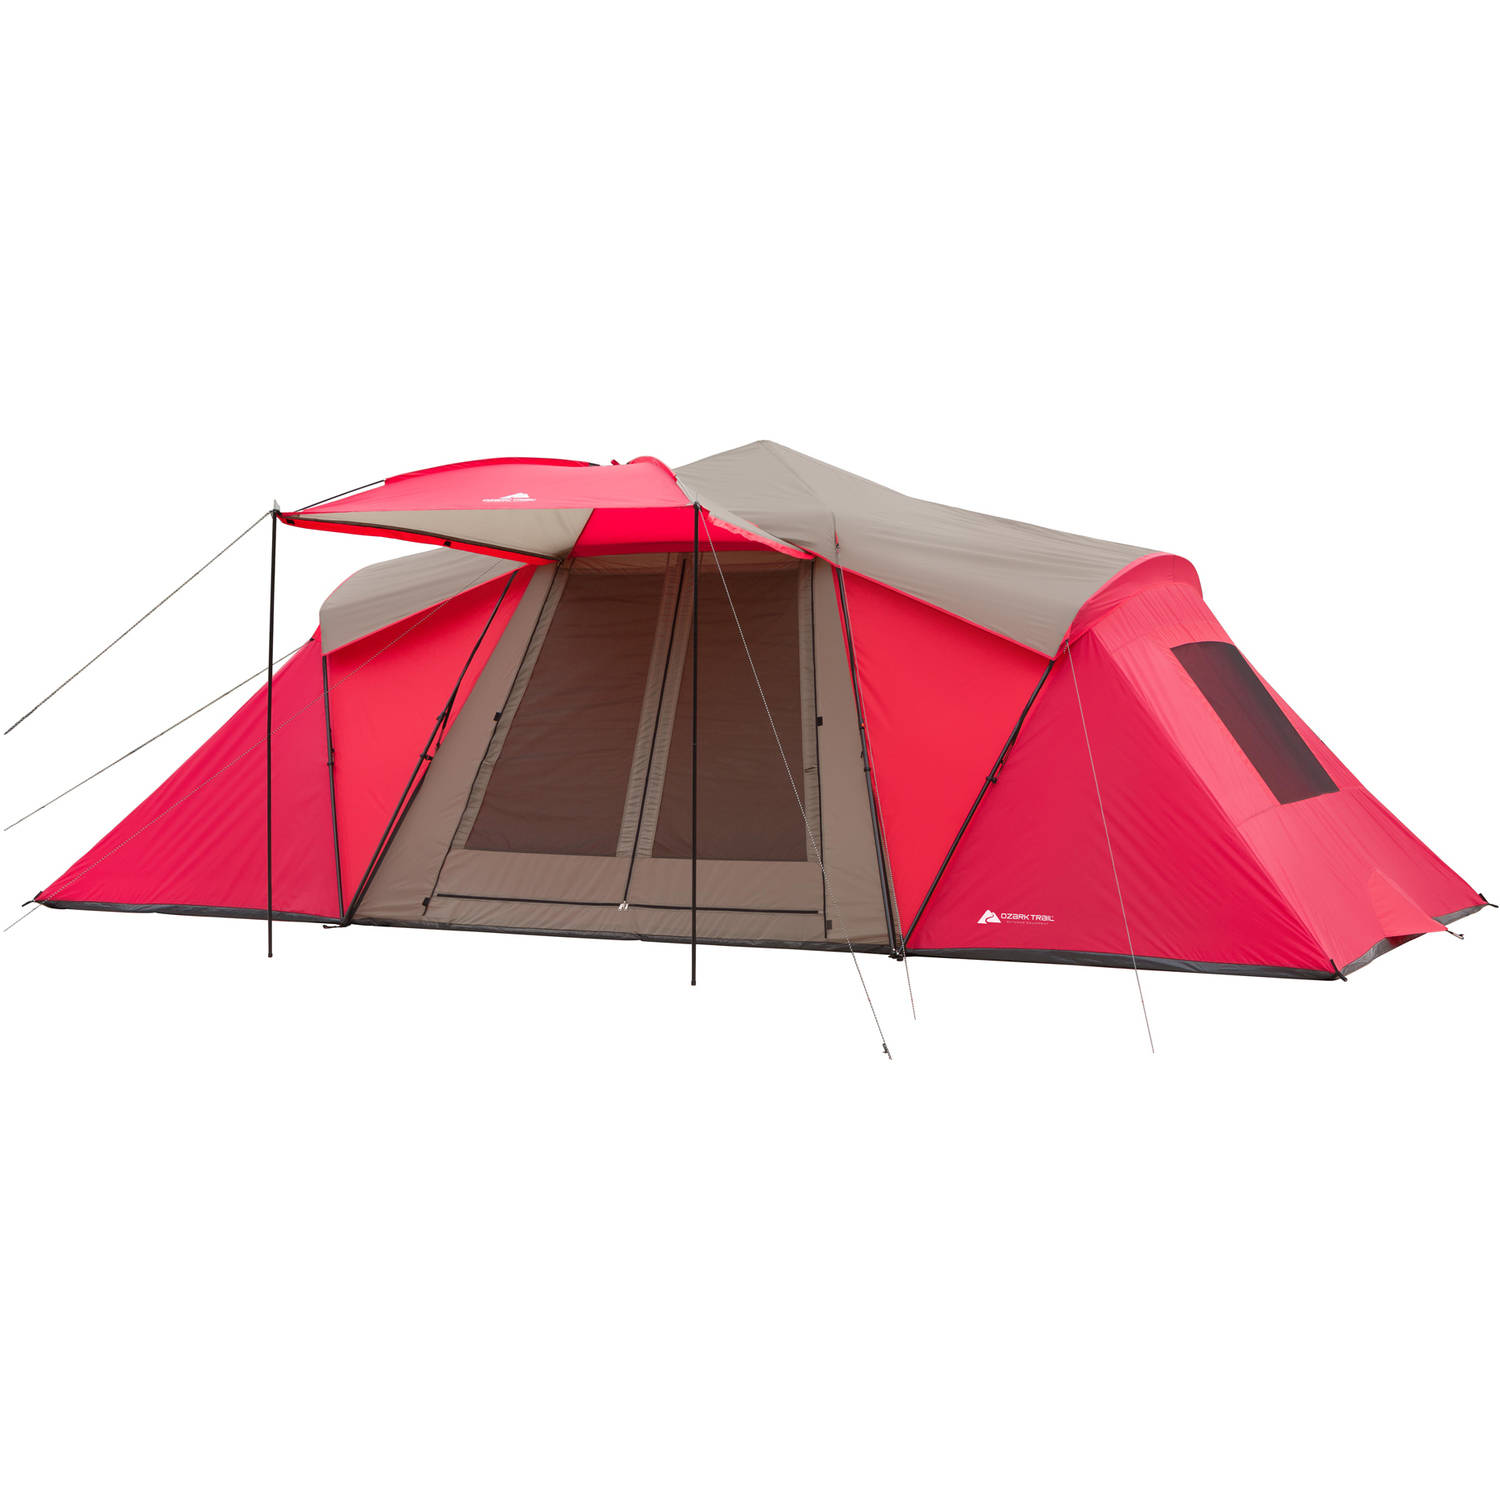 Ozark Trail 21u0027 x 10u0027 3-Room Instant Tent with Awning Sleeps  sc 1 st  Walmart & Ozark Trail 21u0027 x 10u0027 3-Room Instant Tent with Awning Sleeps 12 ...